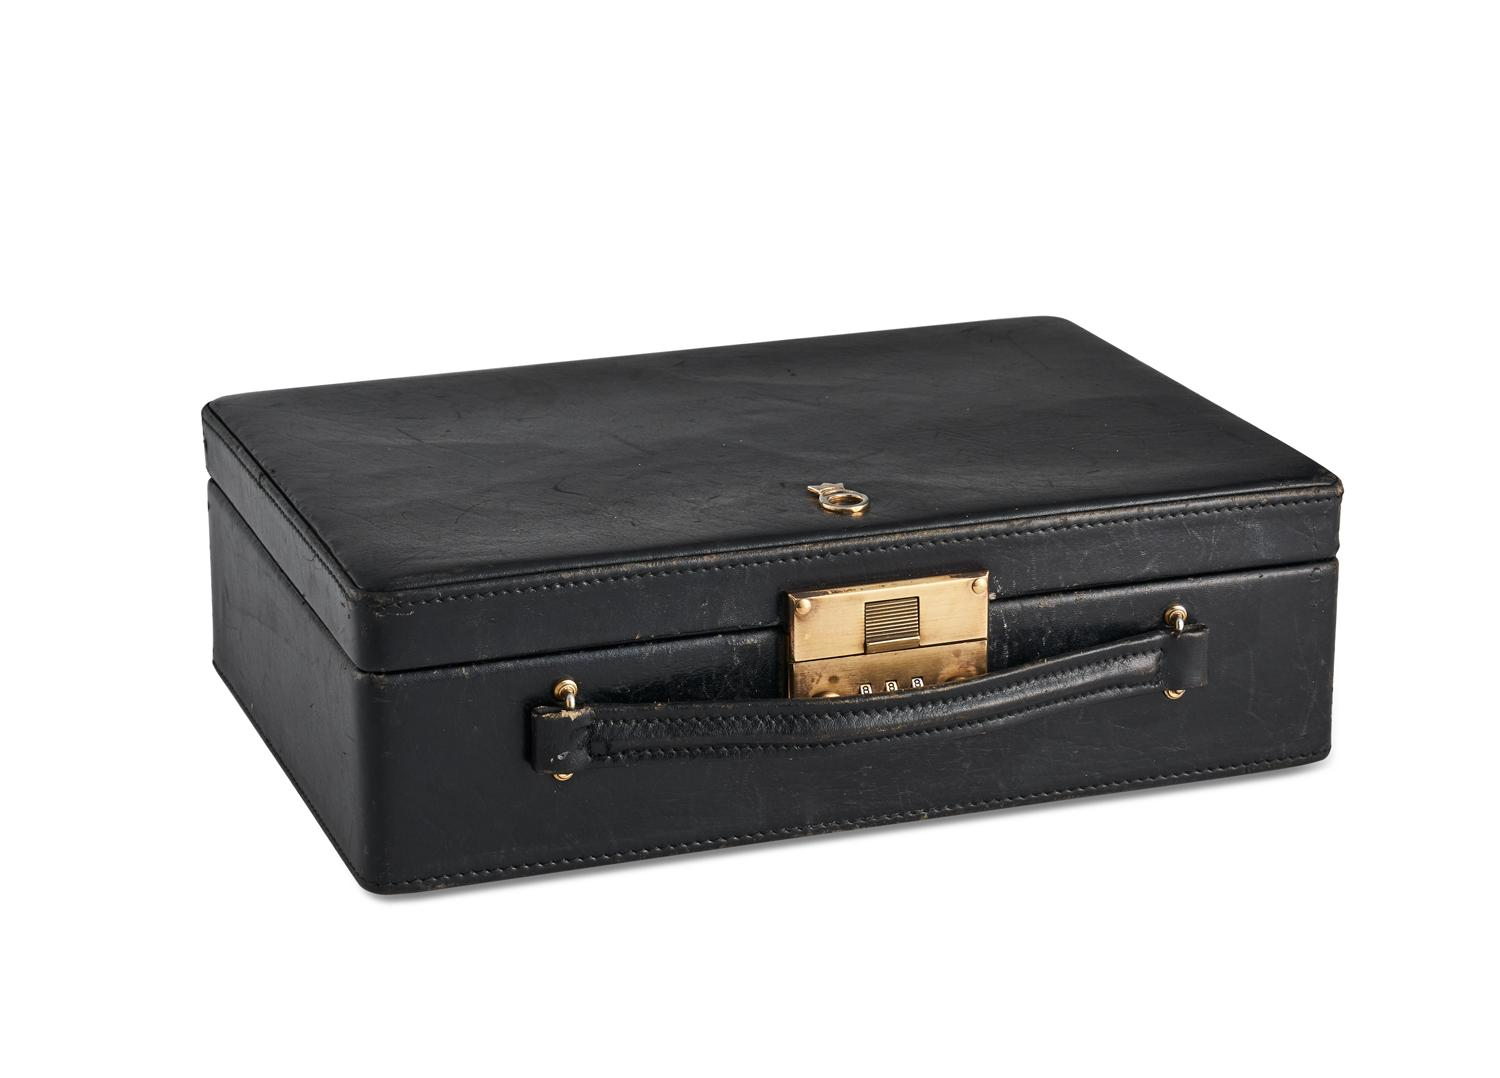 A Black Leather Travel Jewellery Box And A Crocodile Leather